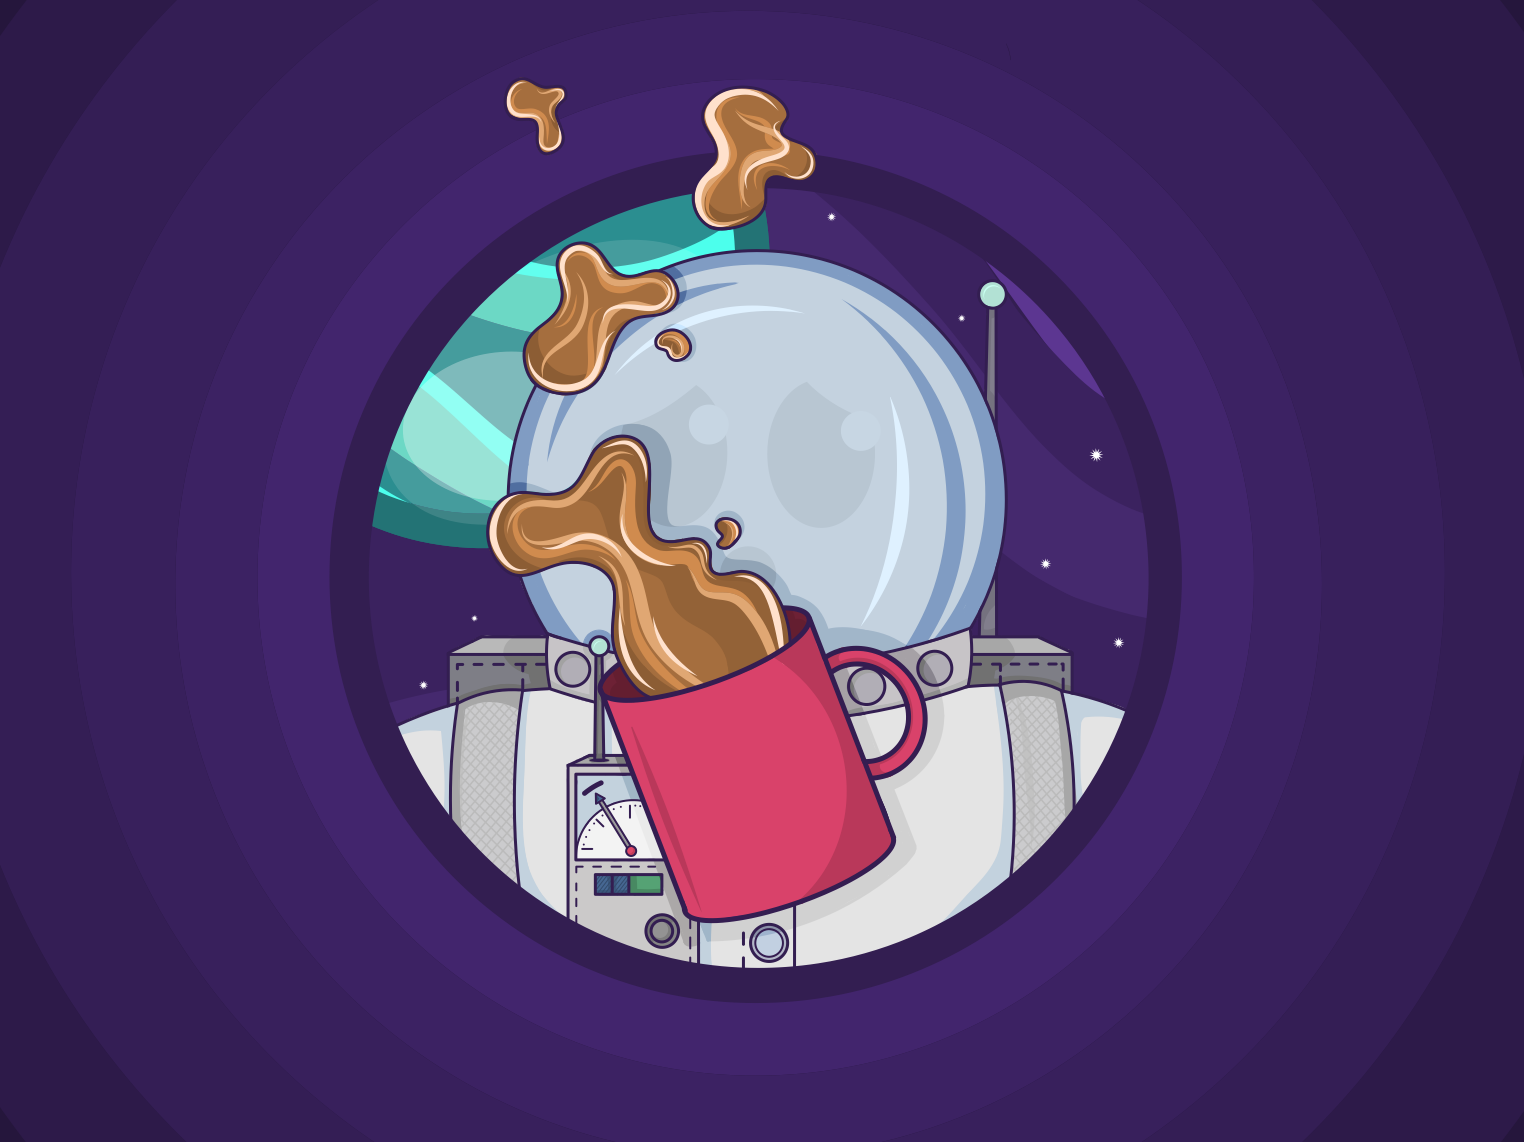 The Longest Commute - Spilt Coffee (2/3) astro galaxy procreate design vector space illustration icon commute character cartoon astronaut adobe sketch adobe draw adobe